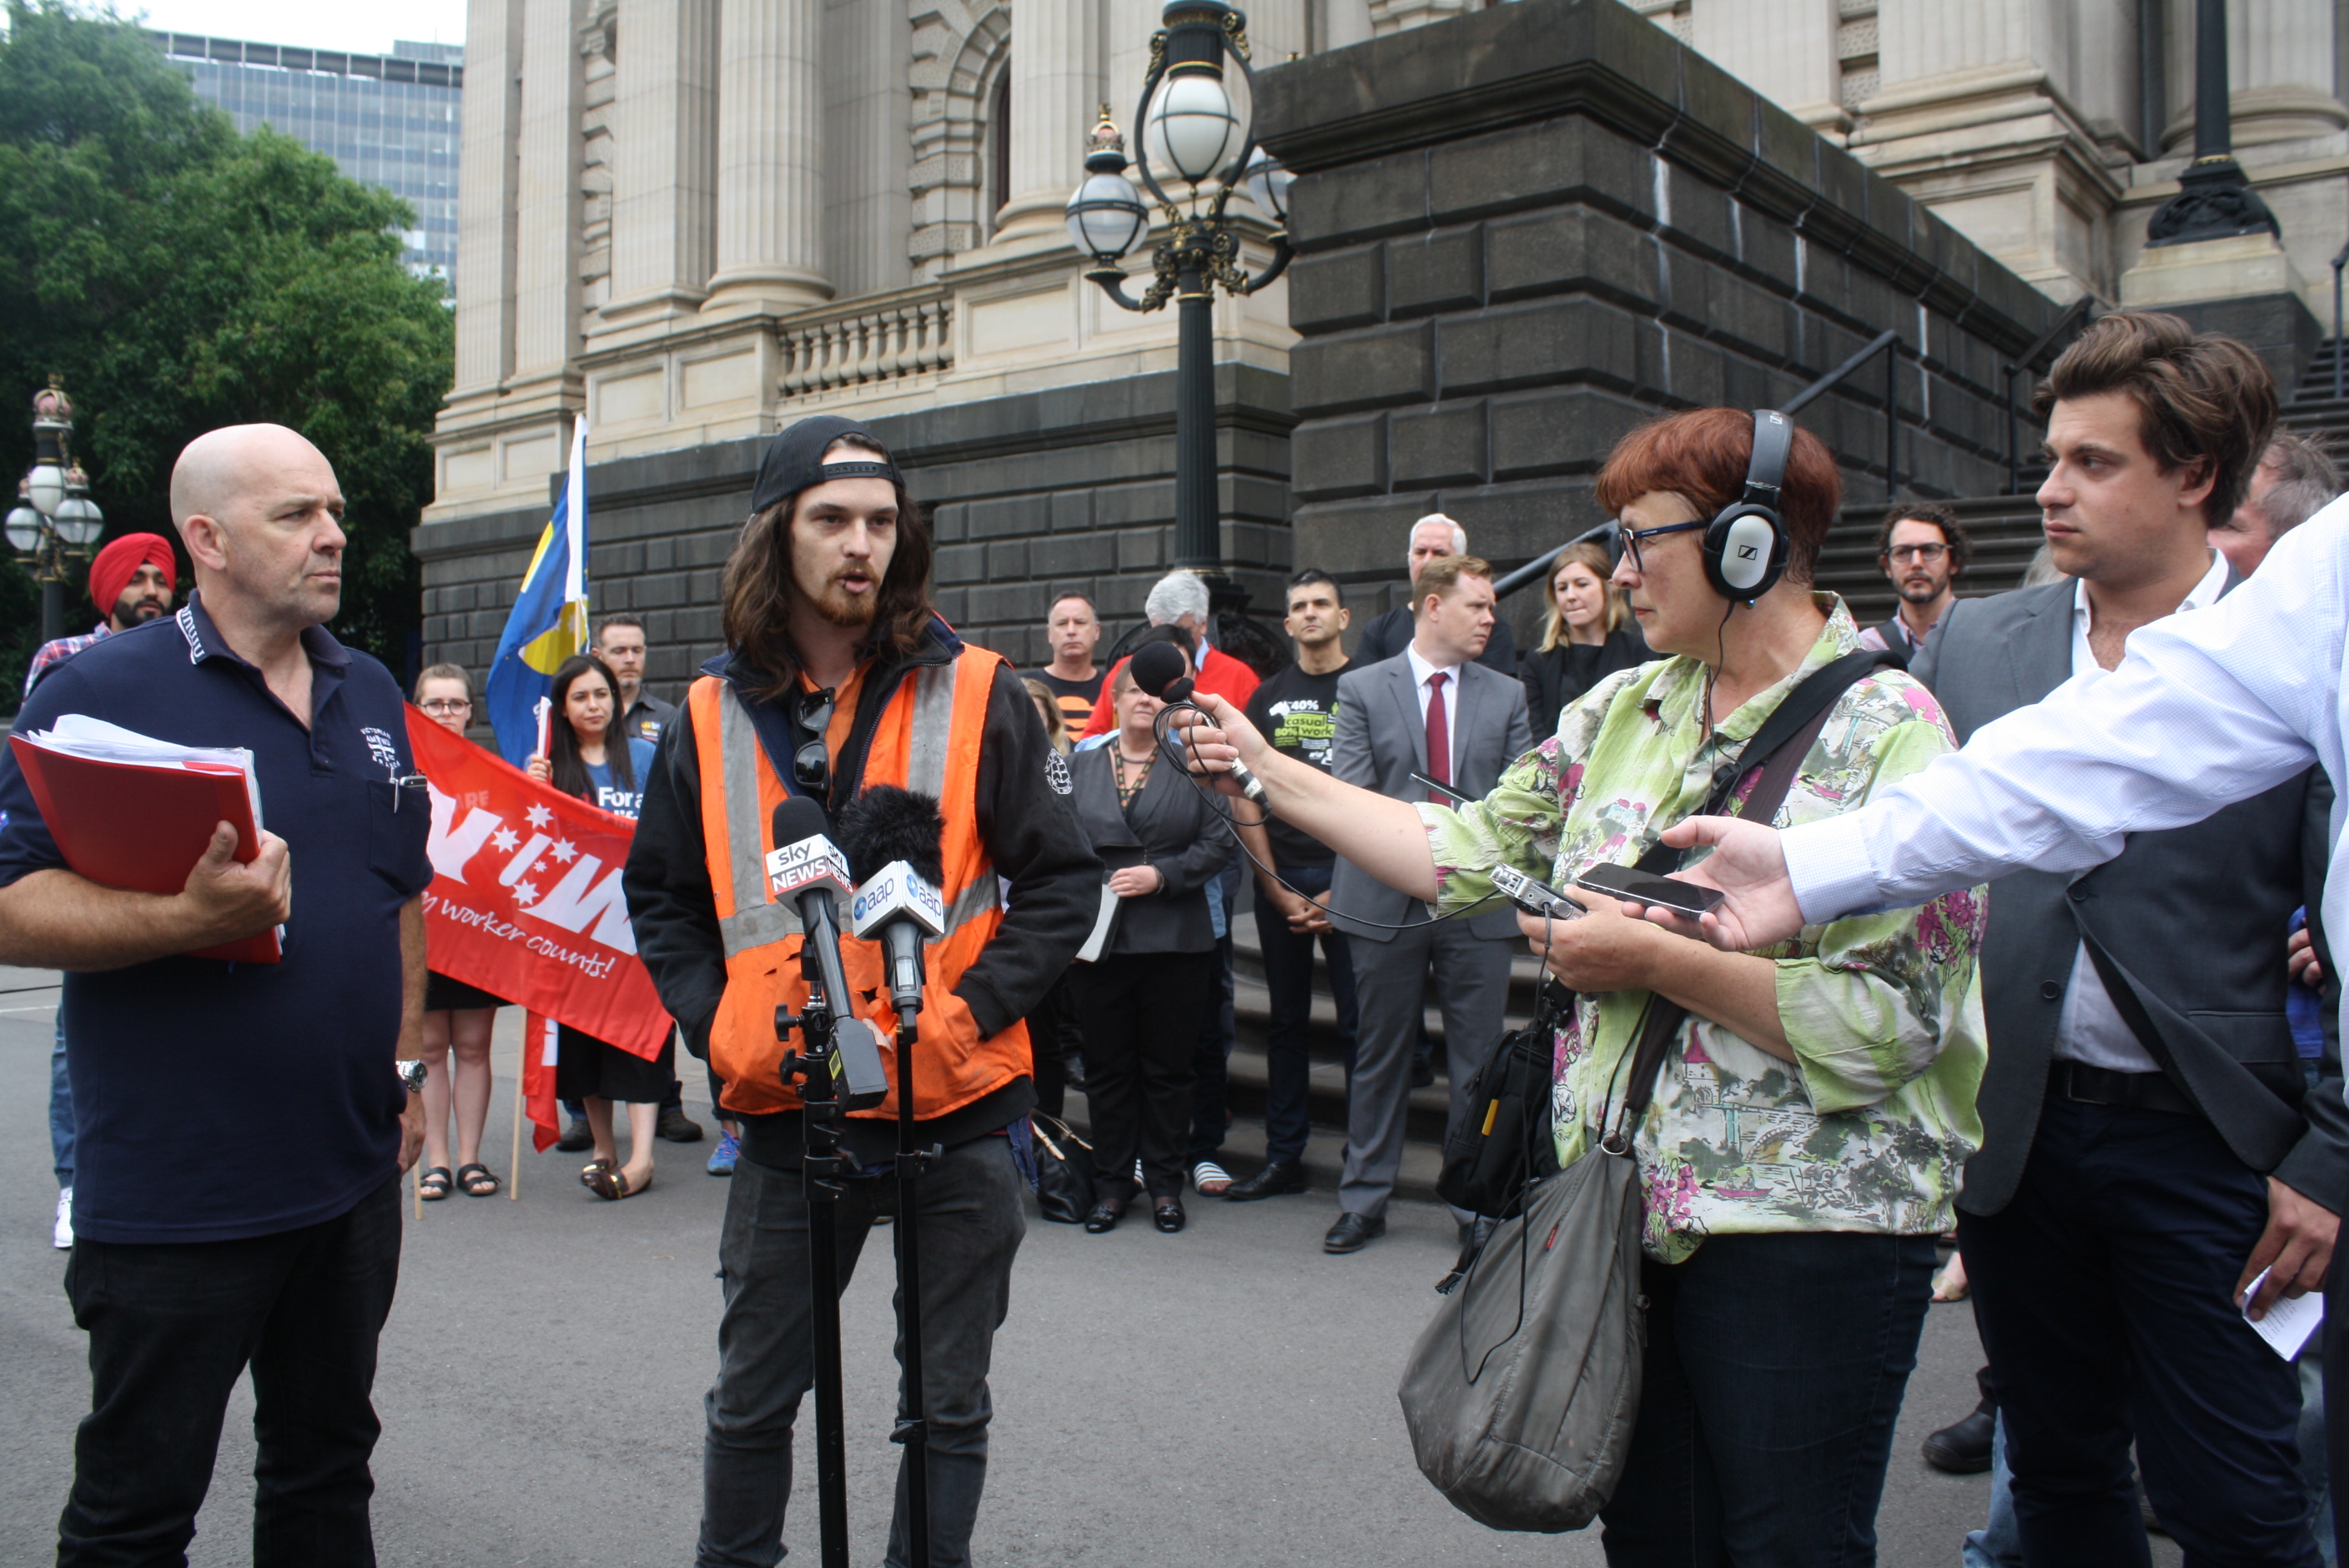 Union aims at labour hire clean-up